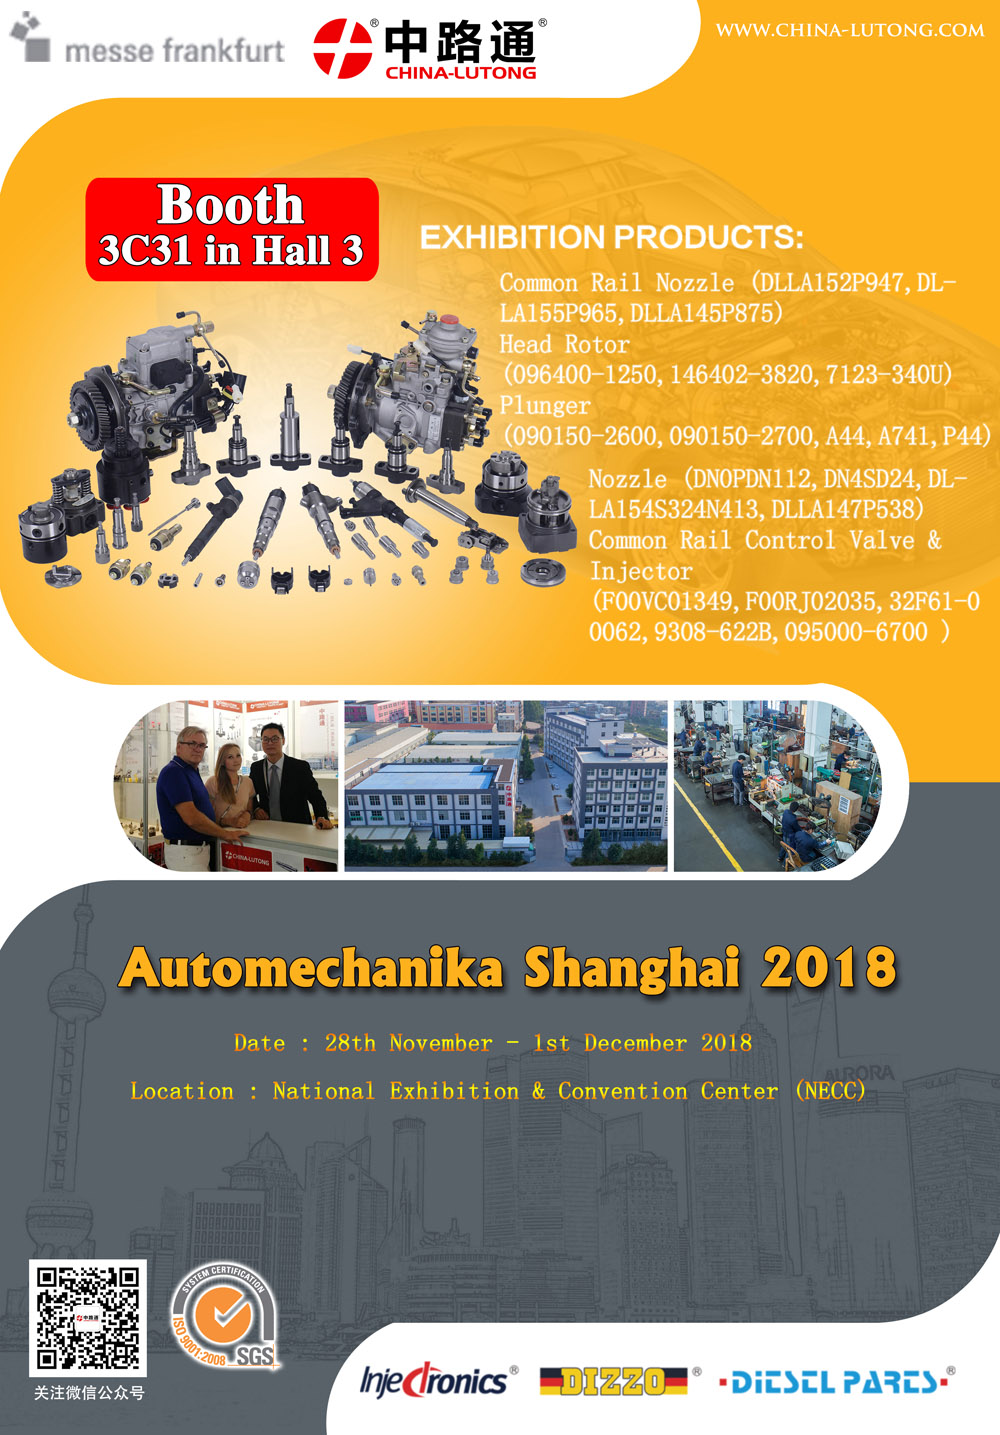 Automechanika Shanghai 2018 Invitation | China-Lutong-  about fuel injection pump system, diesel nozzle for sale